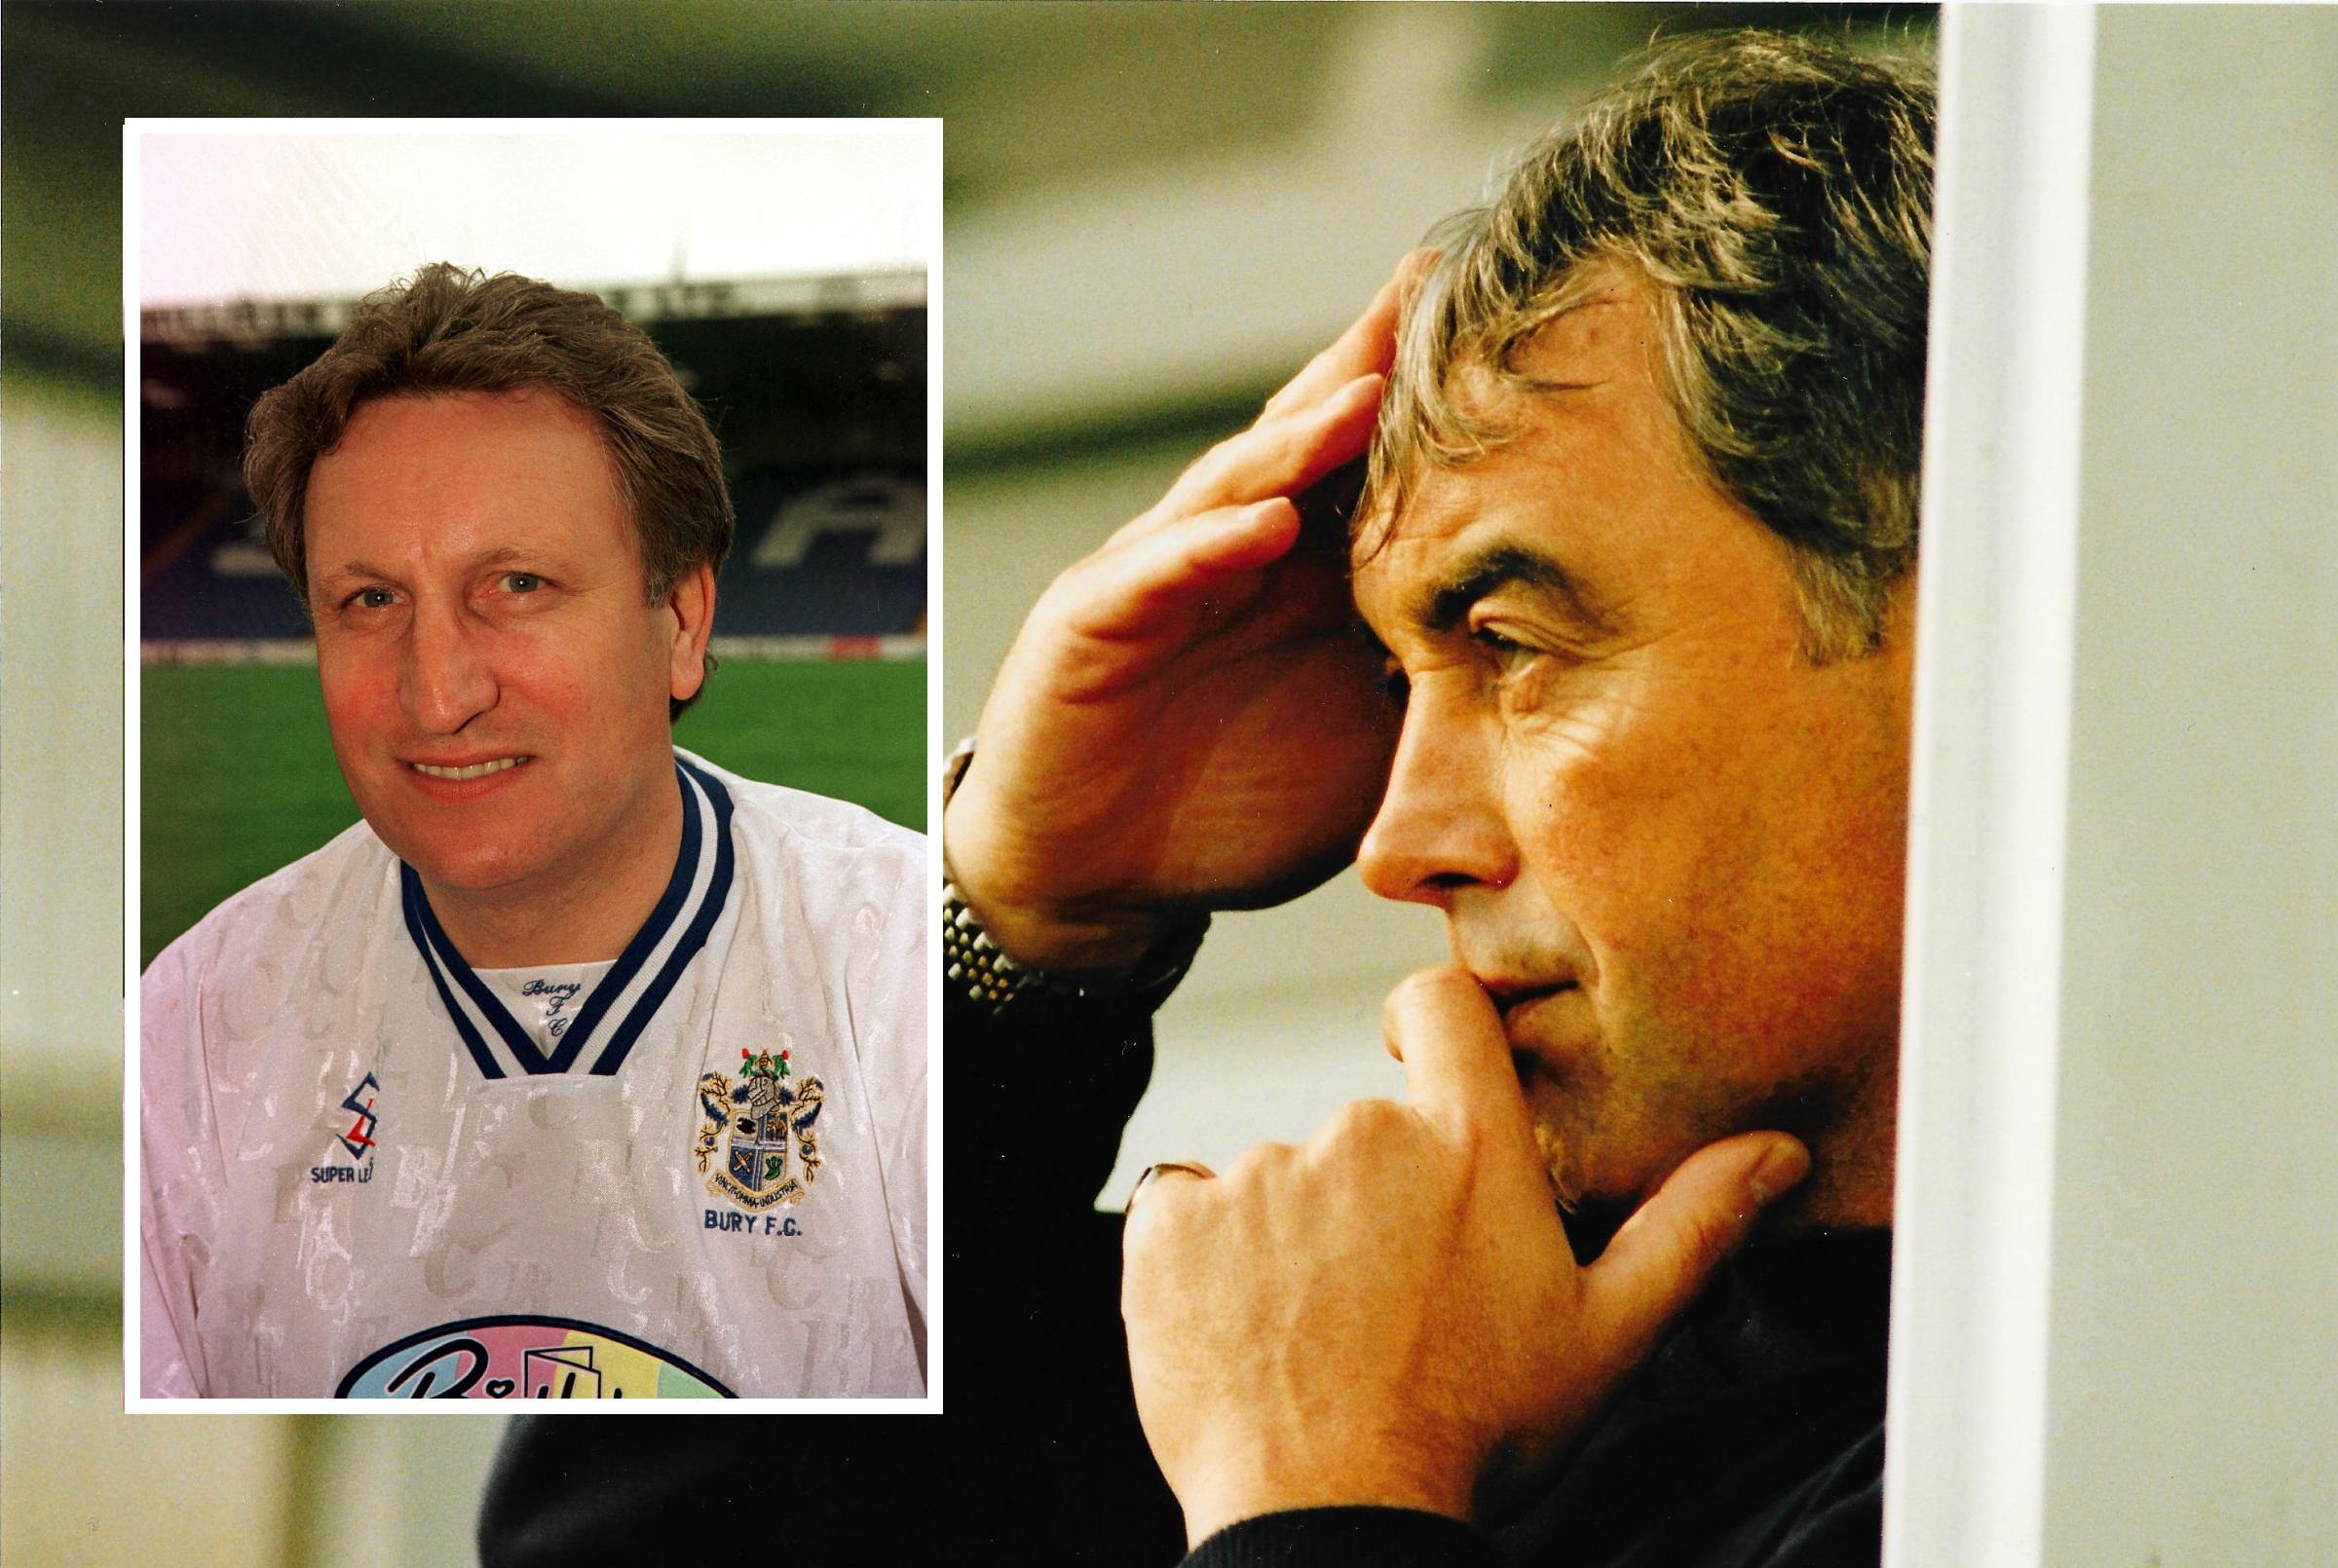 Bury FC through the years: Weighing up Stan Ternent's replacement